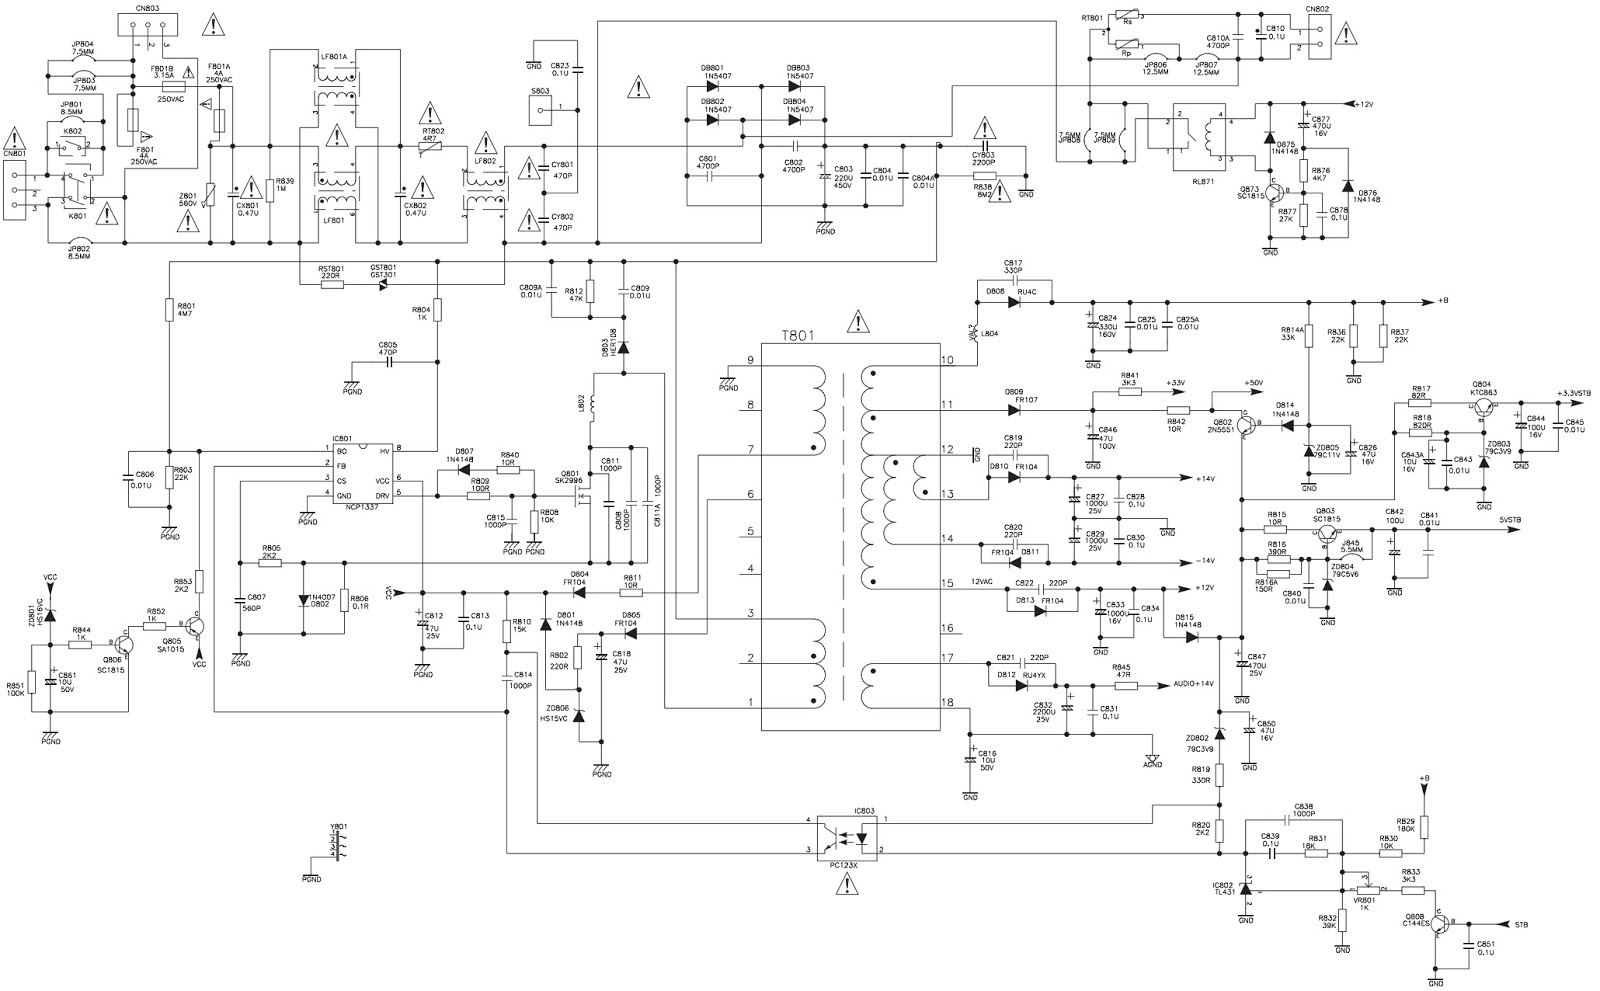 Tcl Pwe 2610 Lcd Tv And Tcl21k9us Crt Smps Circuit Diagrams Diagram Click On The Pictures To Magnify